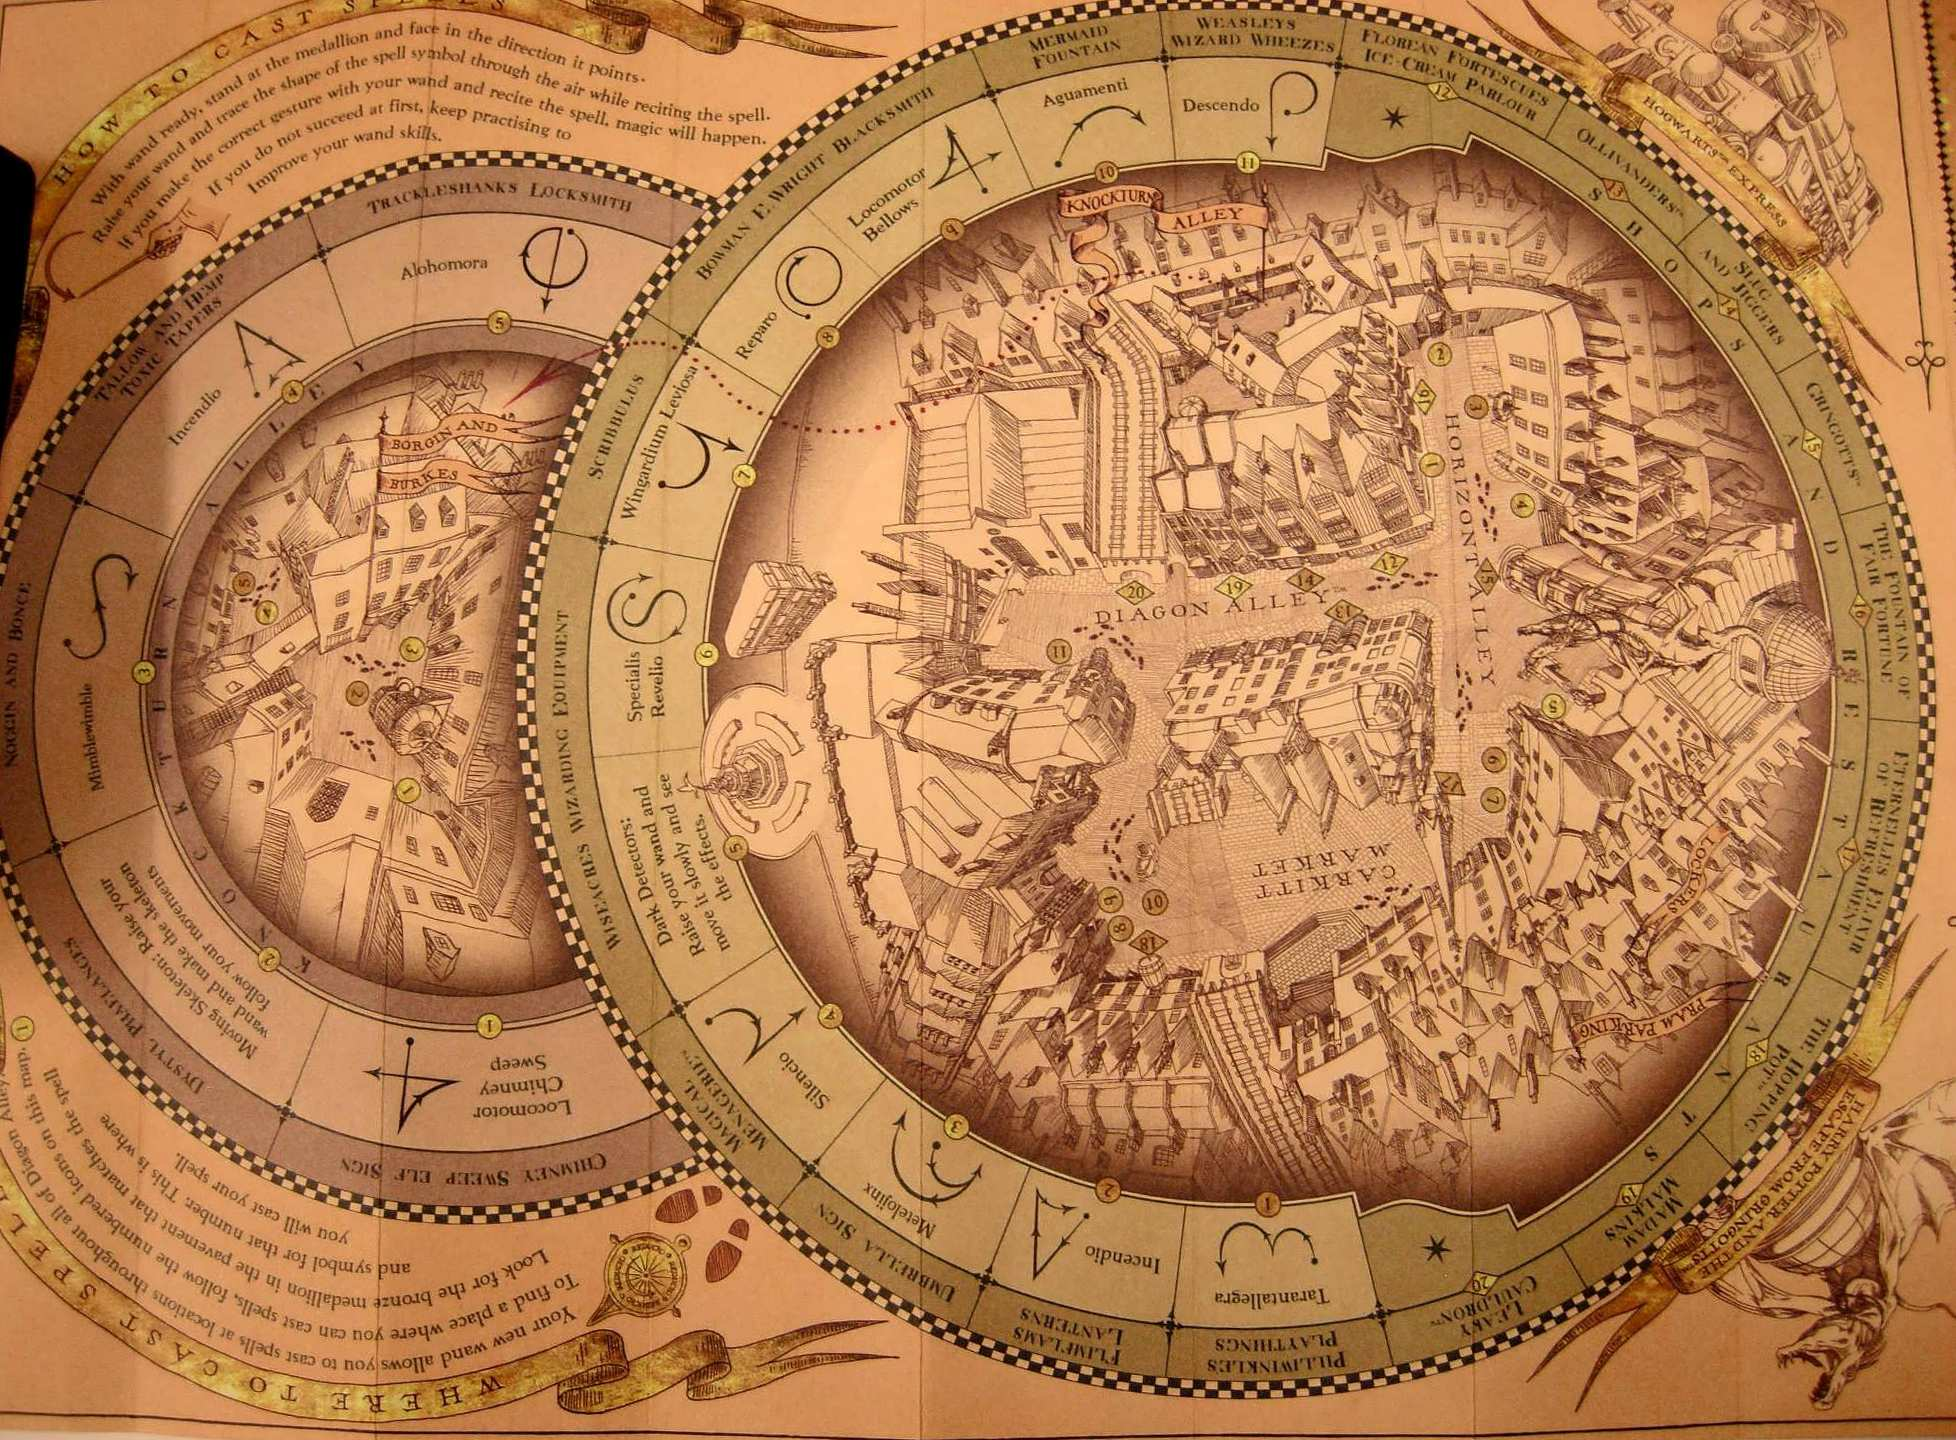 The spell-casting map for Diagon Alley that comes with the purchase of a wand